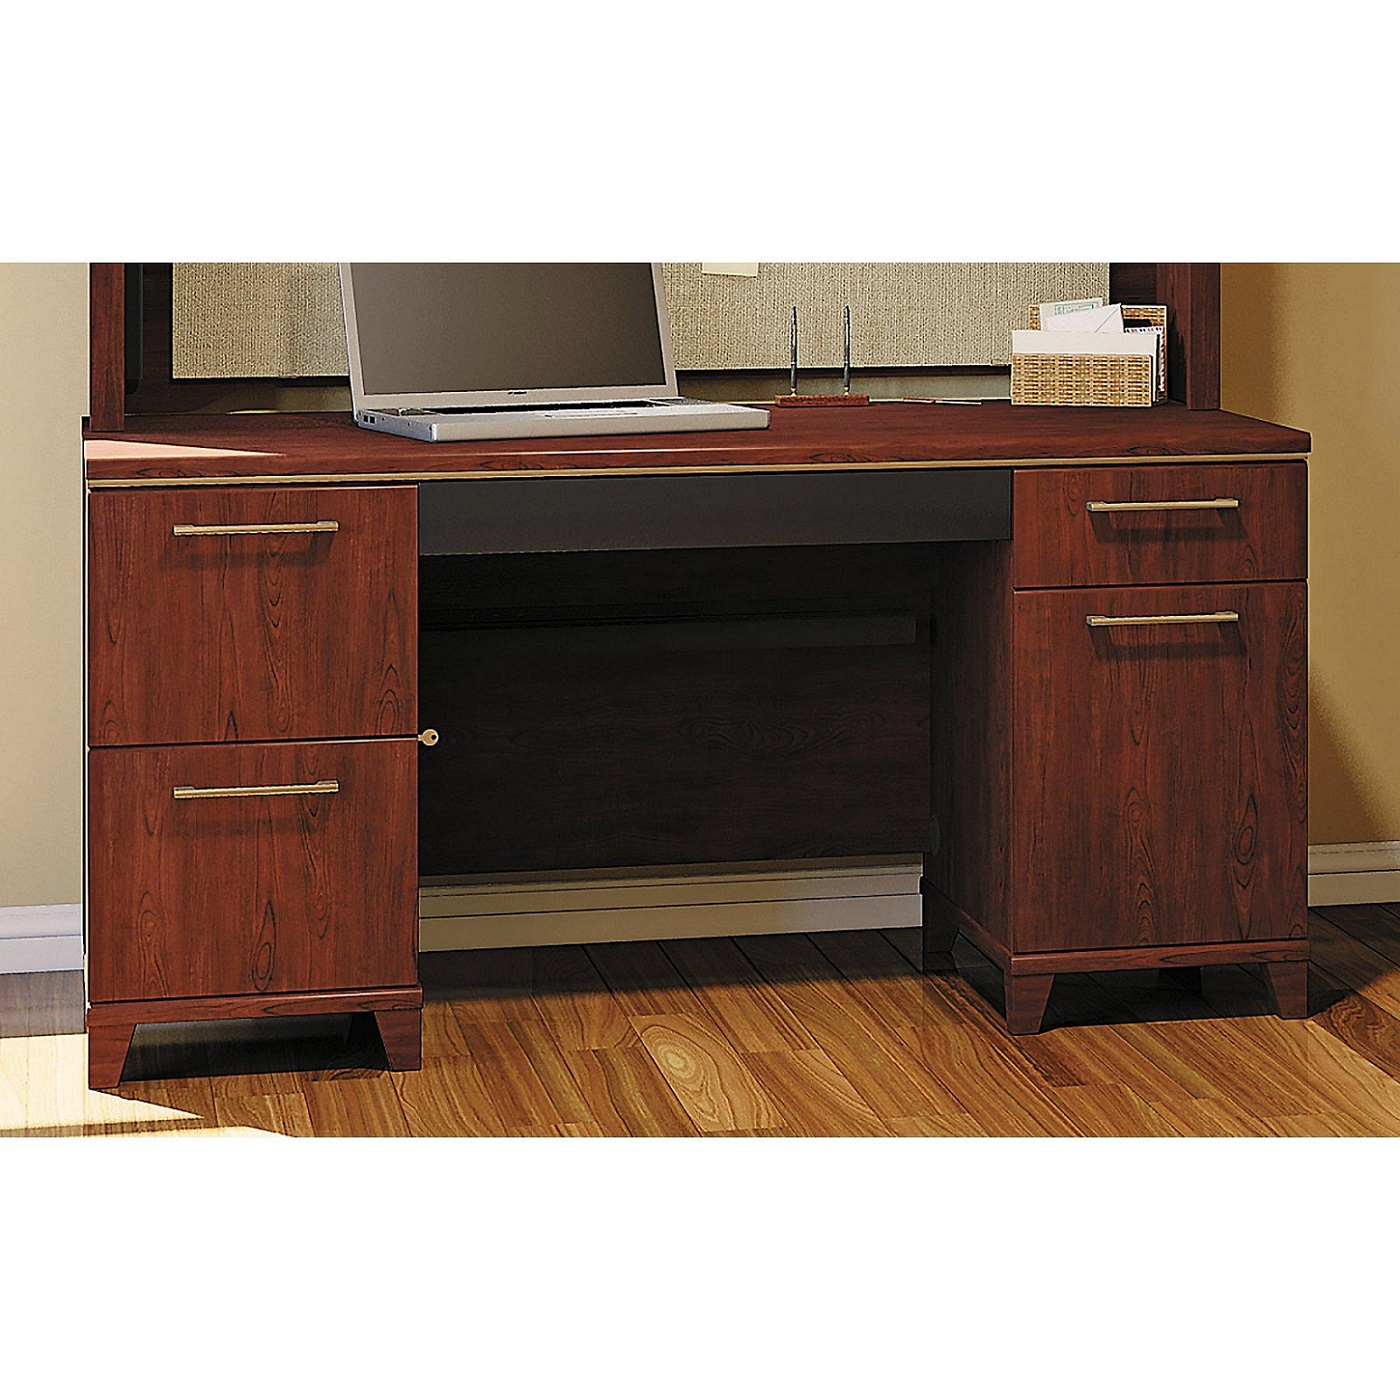 "Free Shipping Furniture: BUSH BUSINESS FURNITURE HARVEST CHERRY 60""W OFFICE DESK"